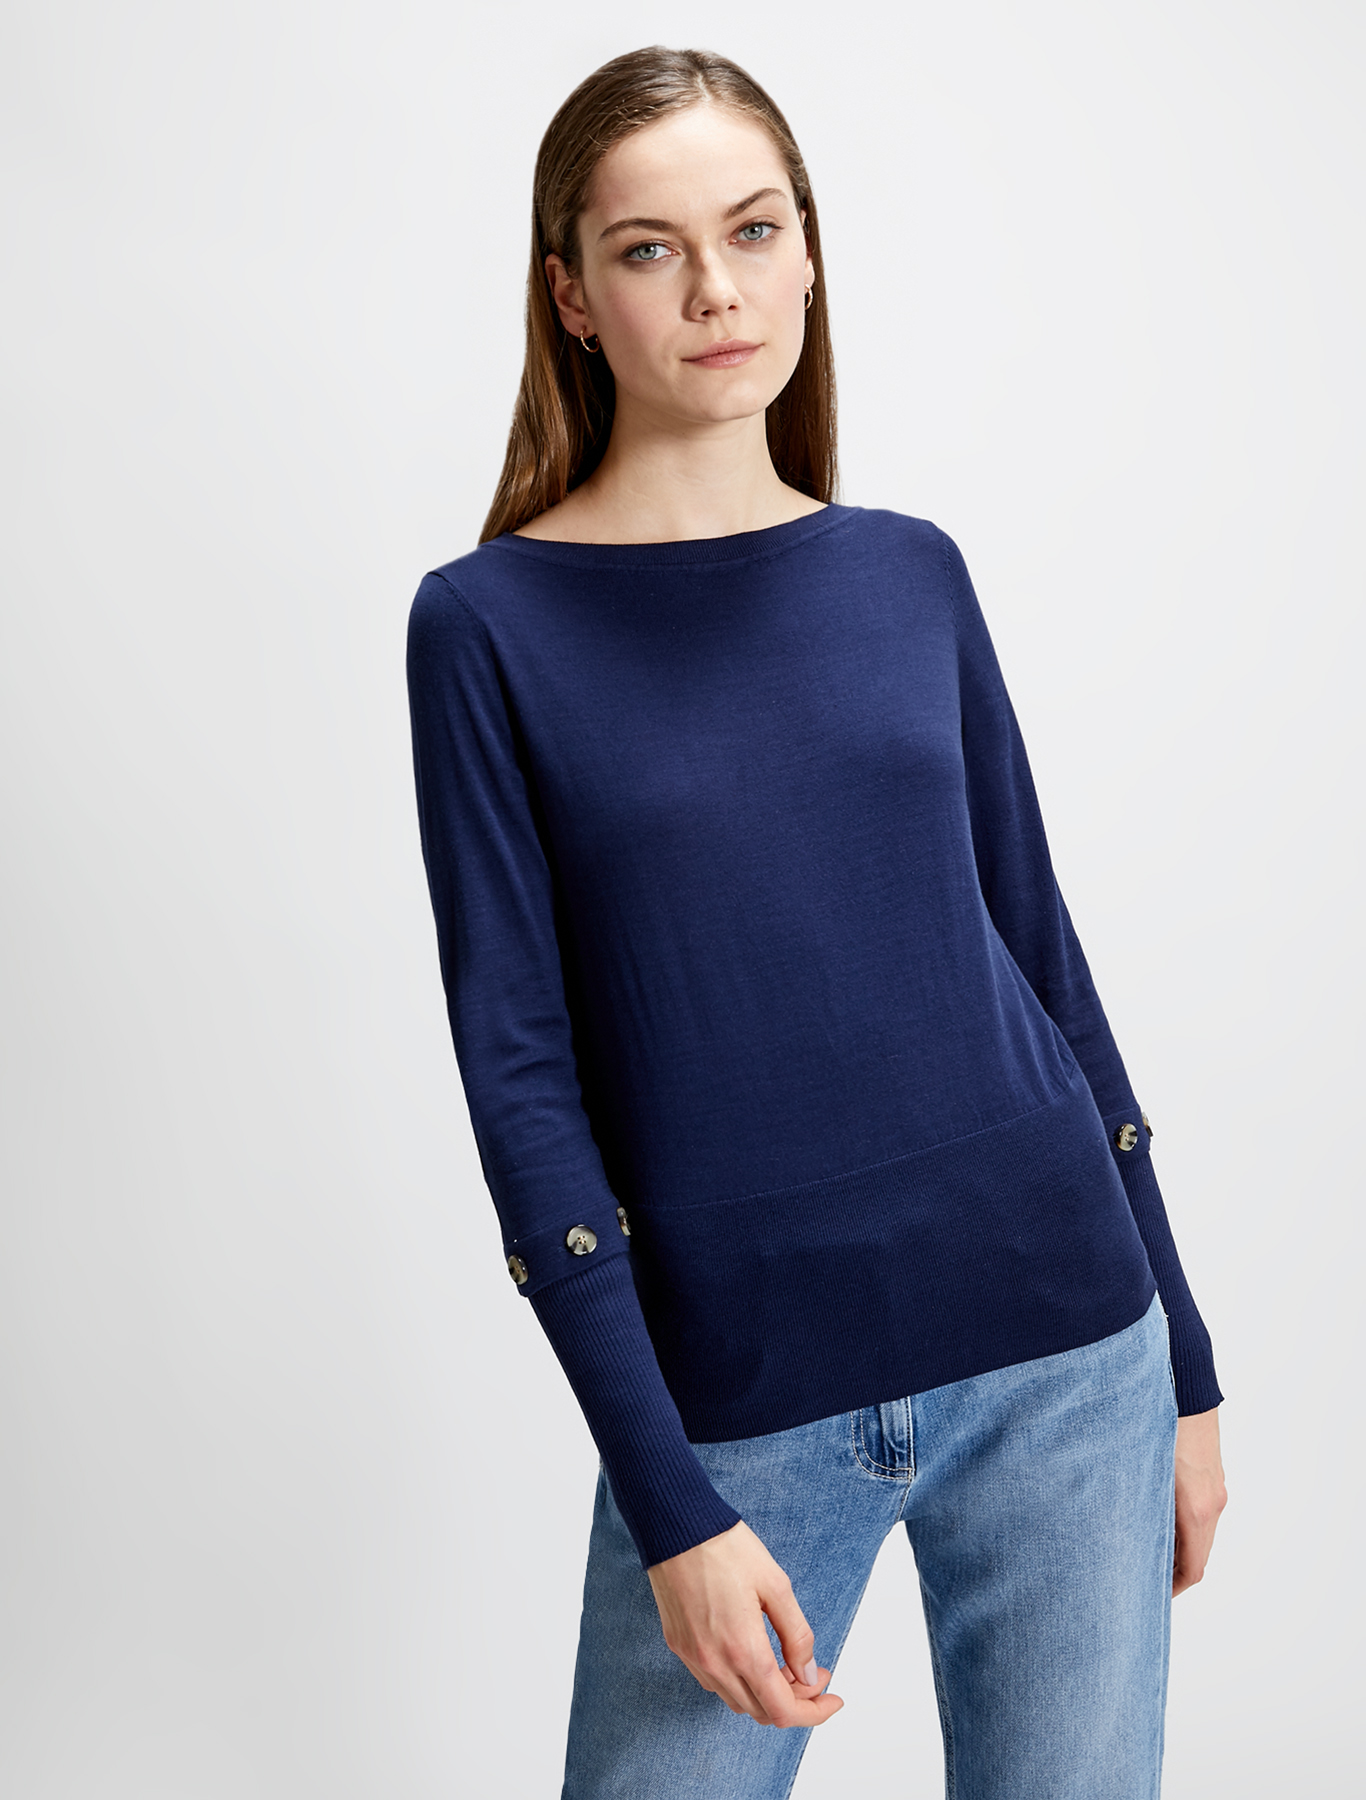 Cotton and silk jumper - navy blue - pennyblack